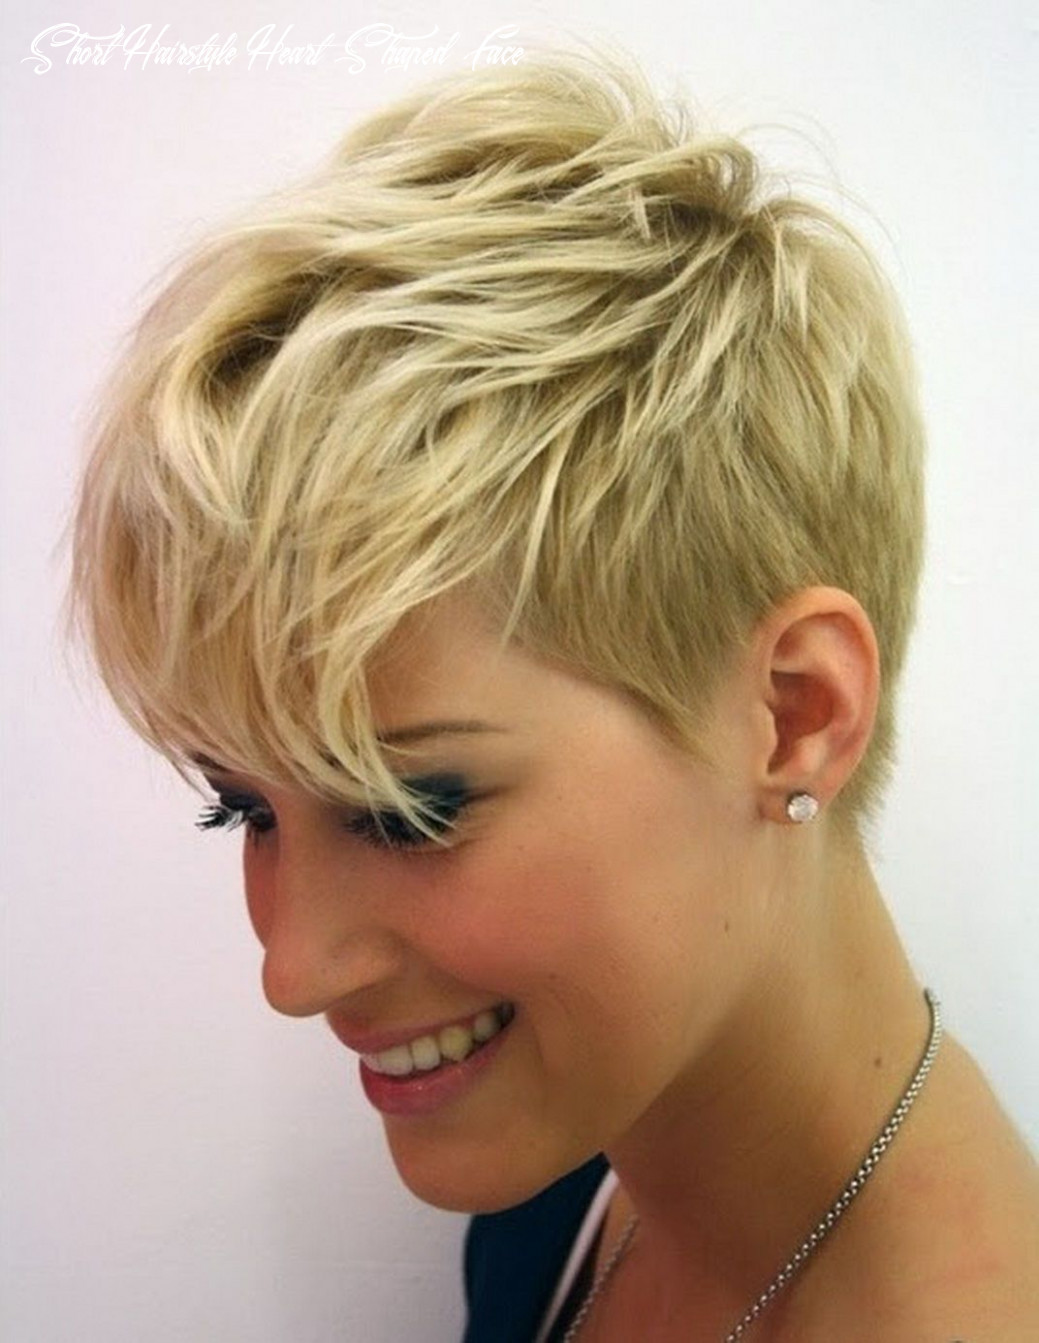 8 short hairstyles for heart shaped faces in 8 | thin fine